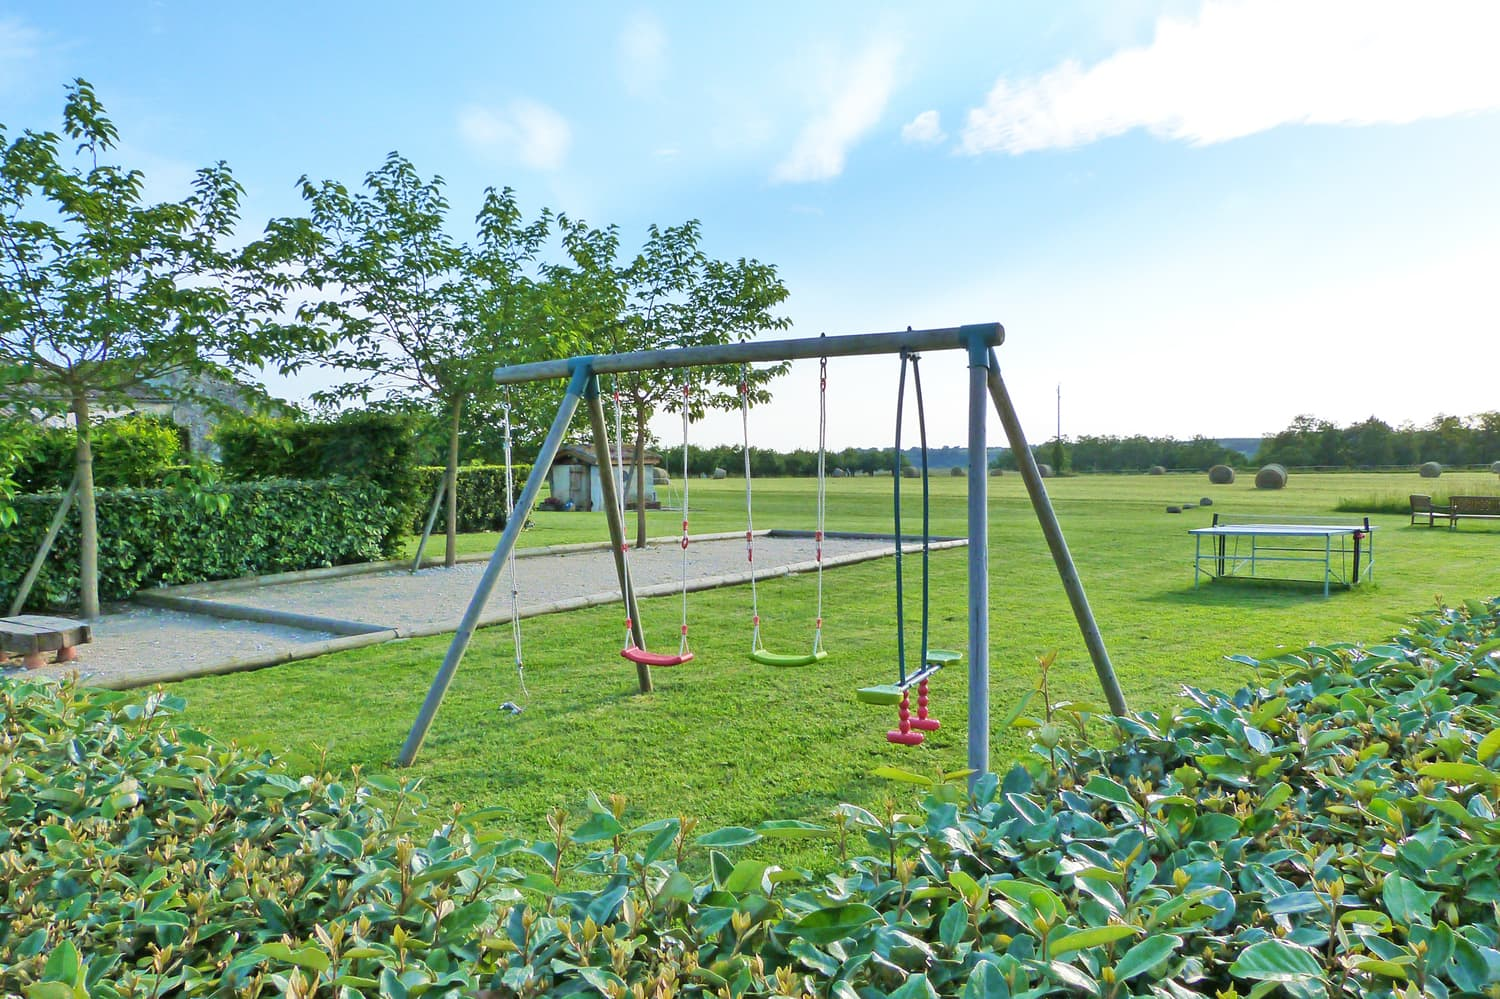 Swings and children's play area